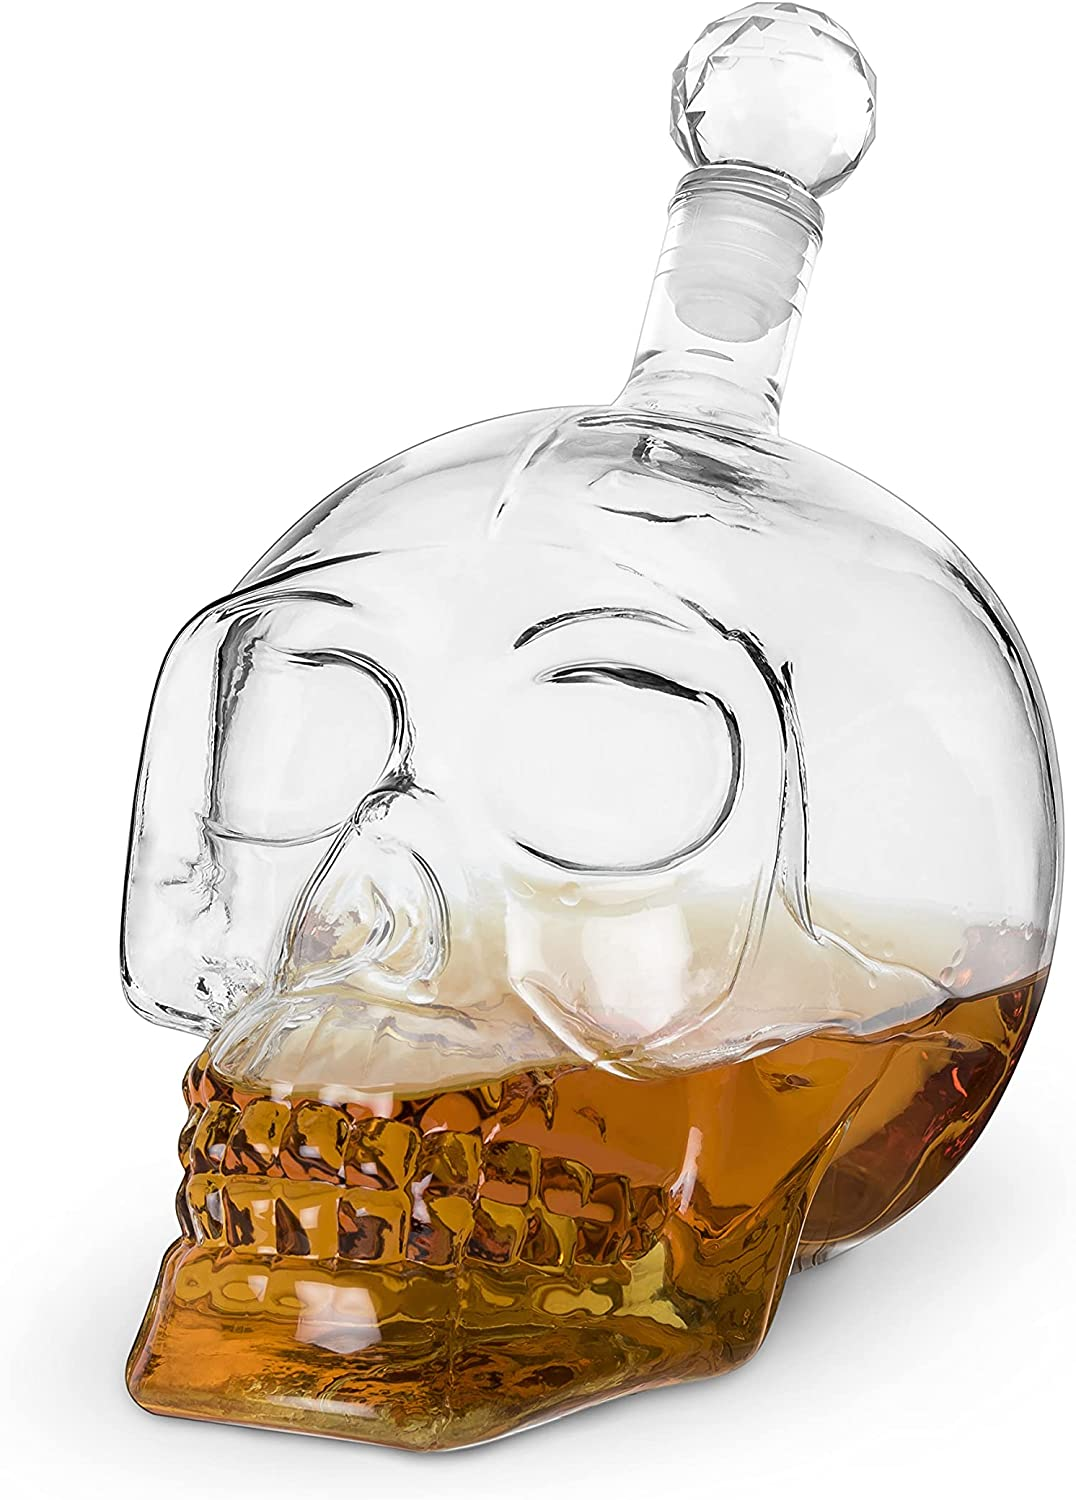 Foster & Rye Skull Liquor Decanter, Clear Glass Skull Shaped Whiskey Decanter with Stopper, 25 Ounce Capacity, Set of 1